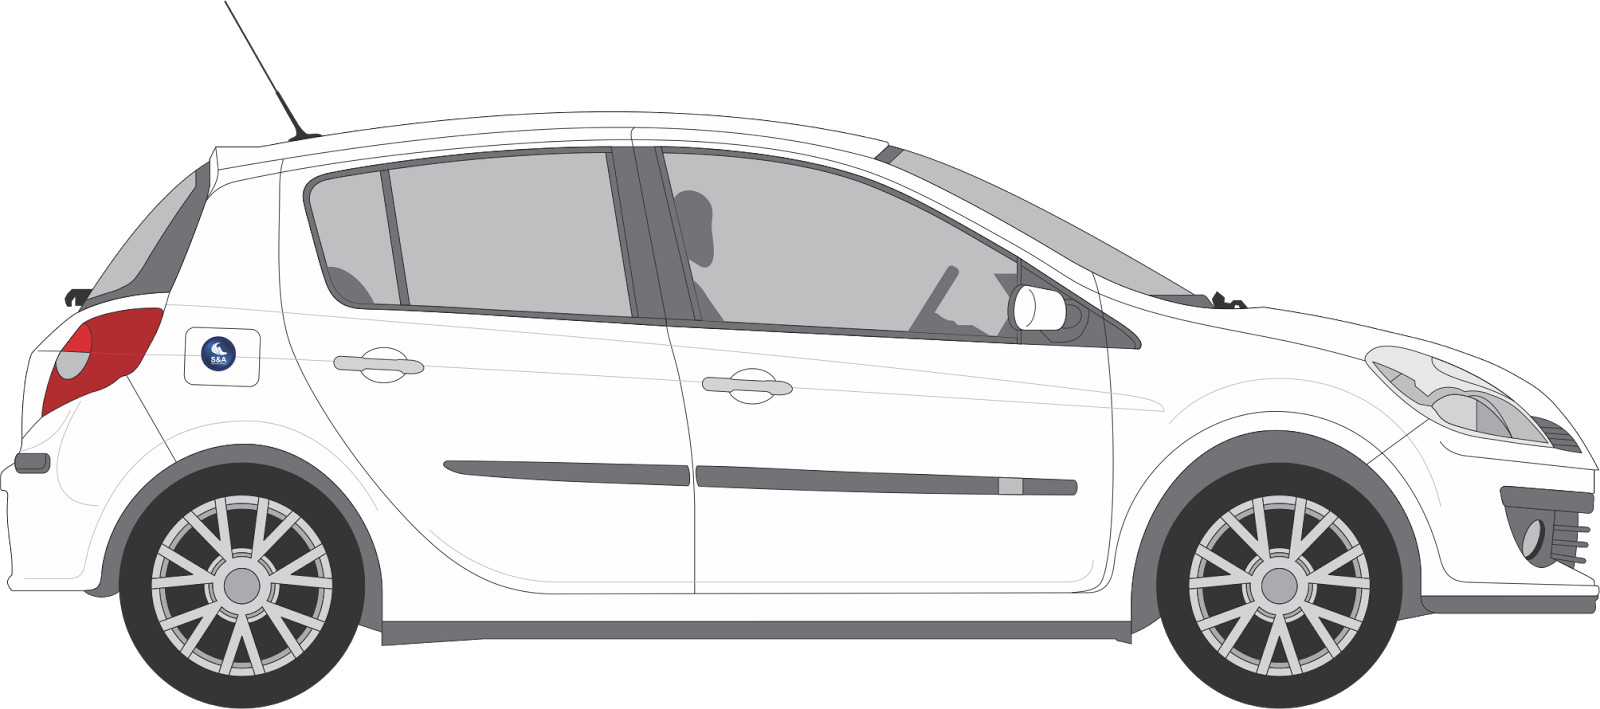 Free vector about car & Truck vector graphics